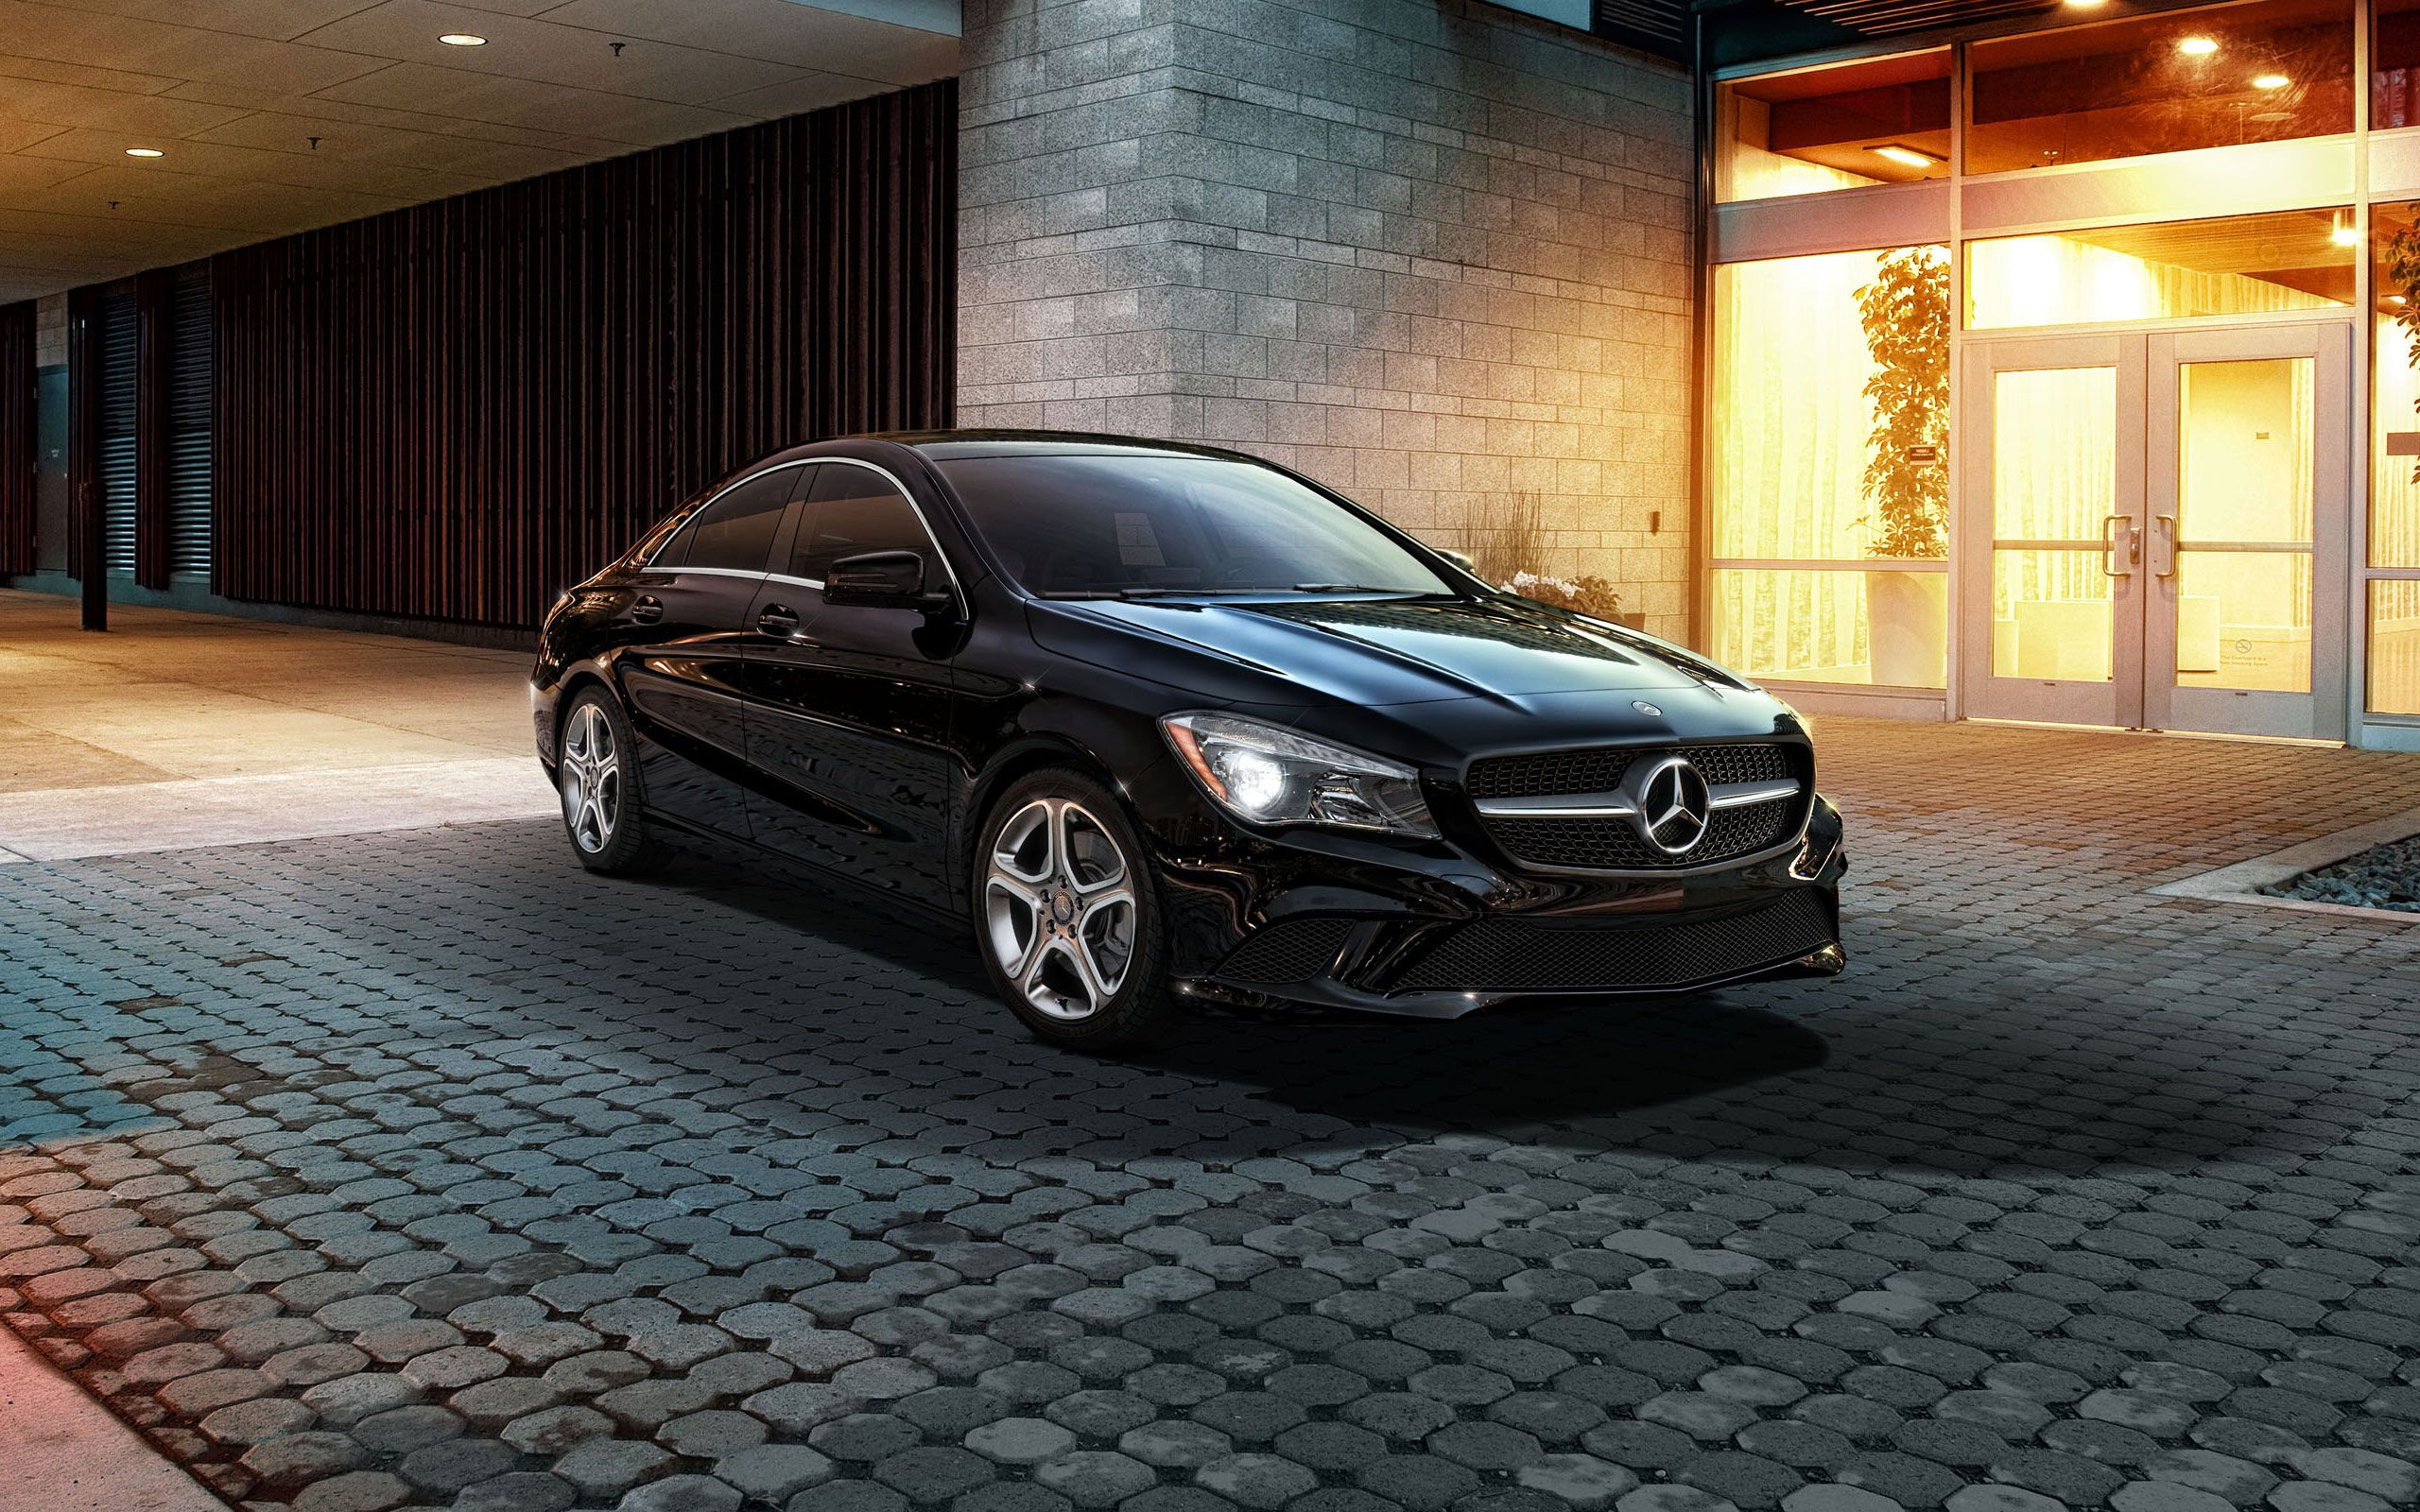 2014 Mercedes Cla Photo Gallery With Images Mercedes Car